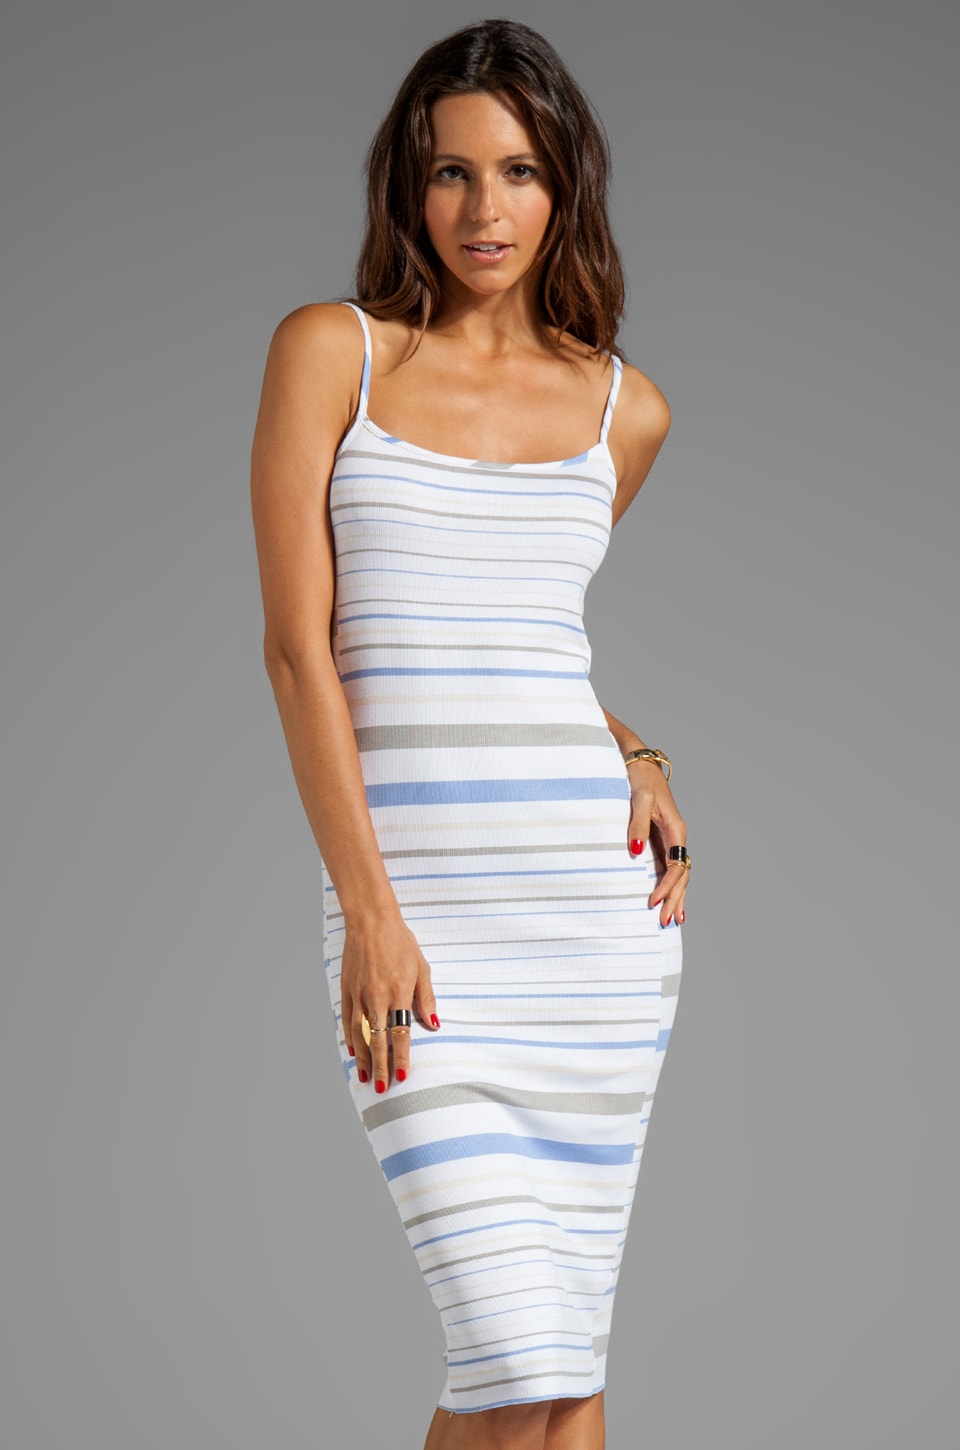 dolan T-Shirt EXCLUSIVE Midi Dress in Tan/White/Blue Stripe